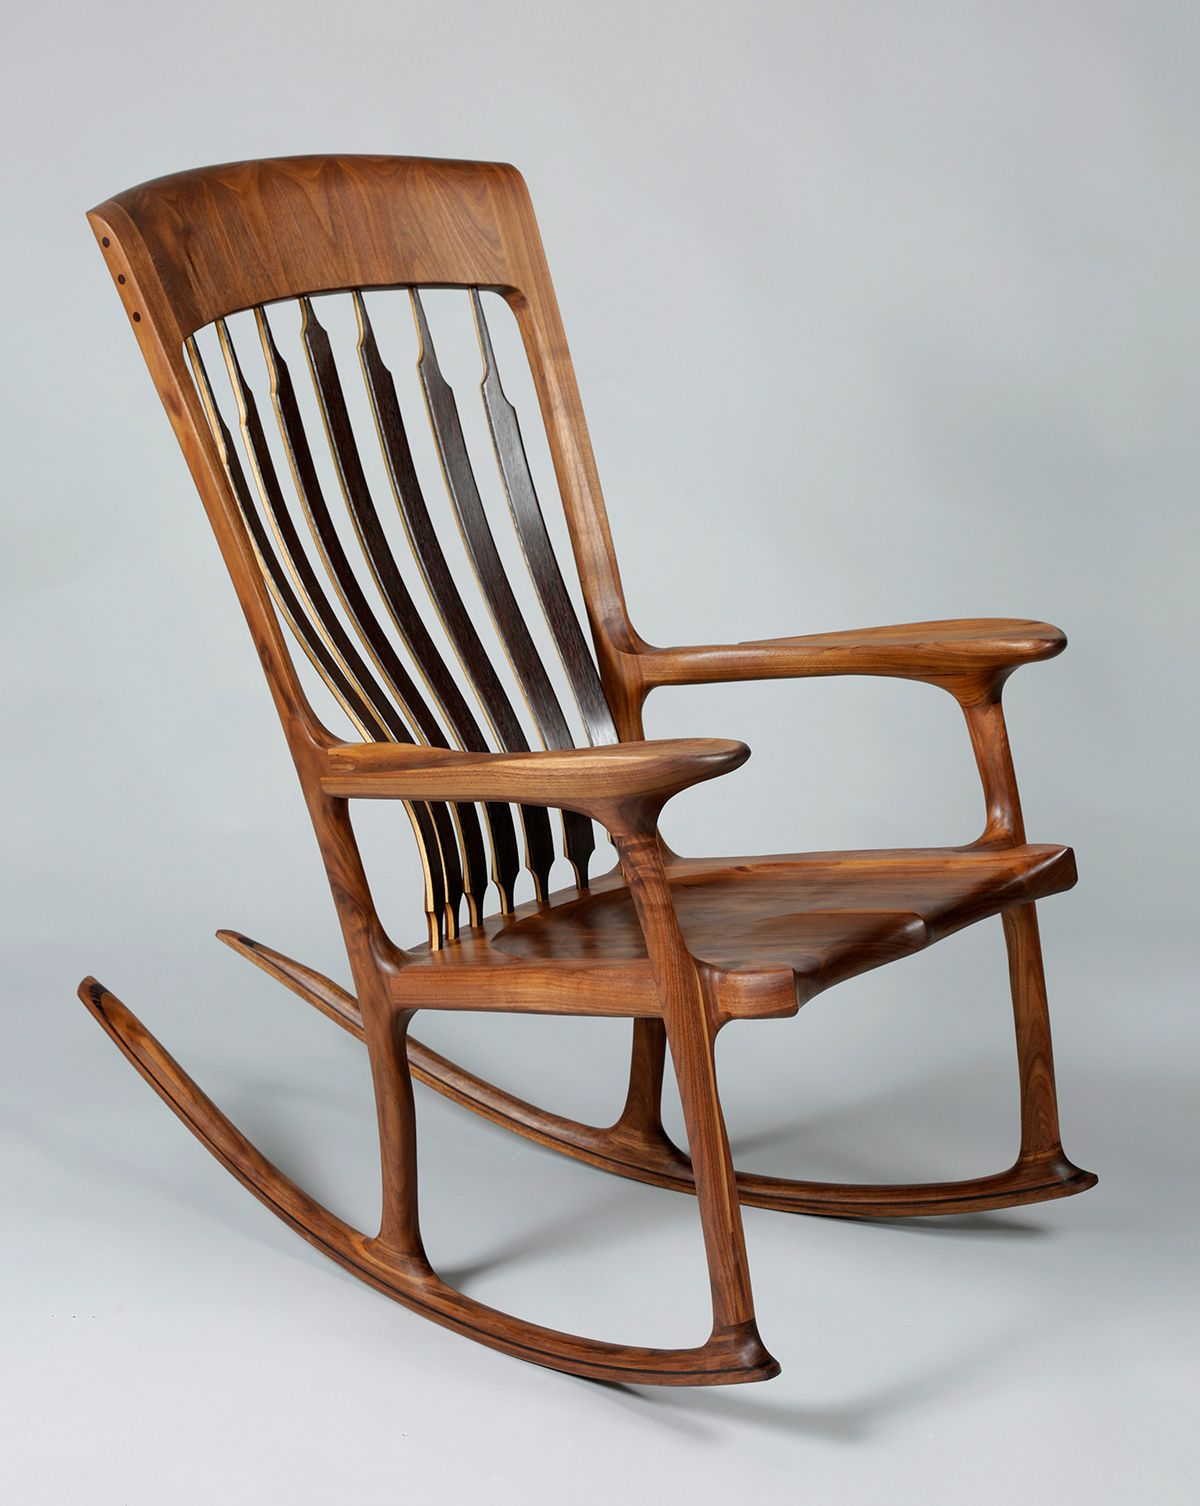 Sculpted Maloof Style Rocking Chair Made By North Carolina